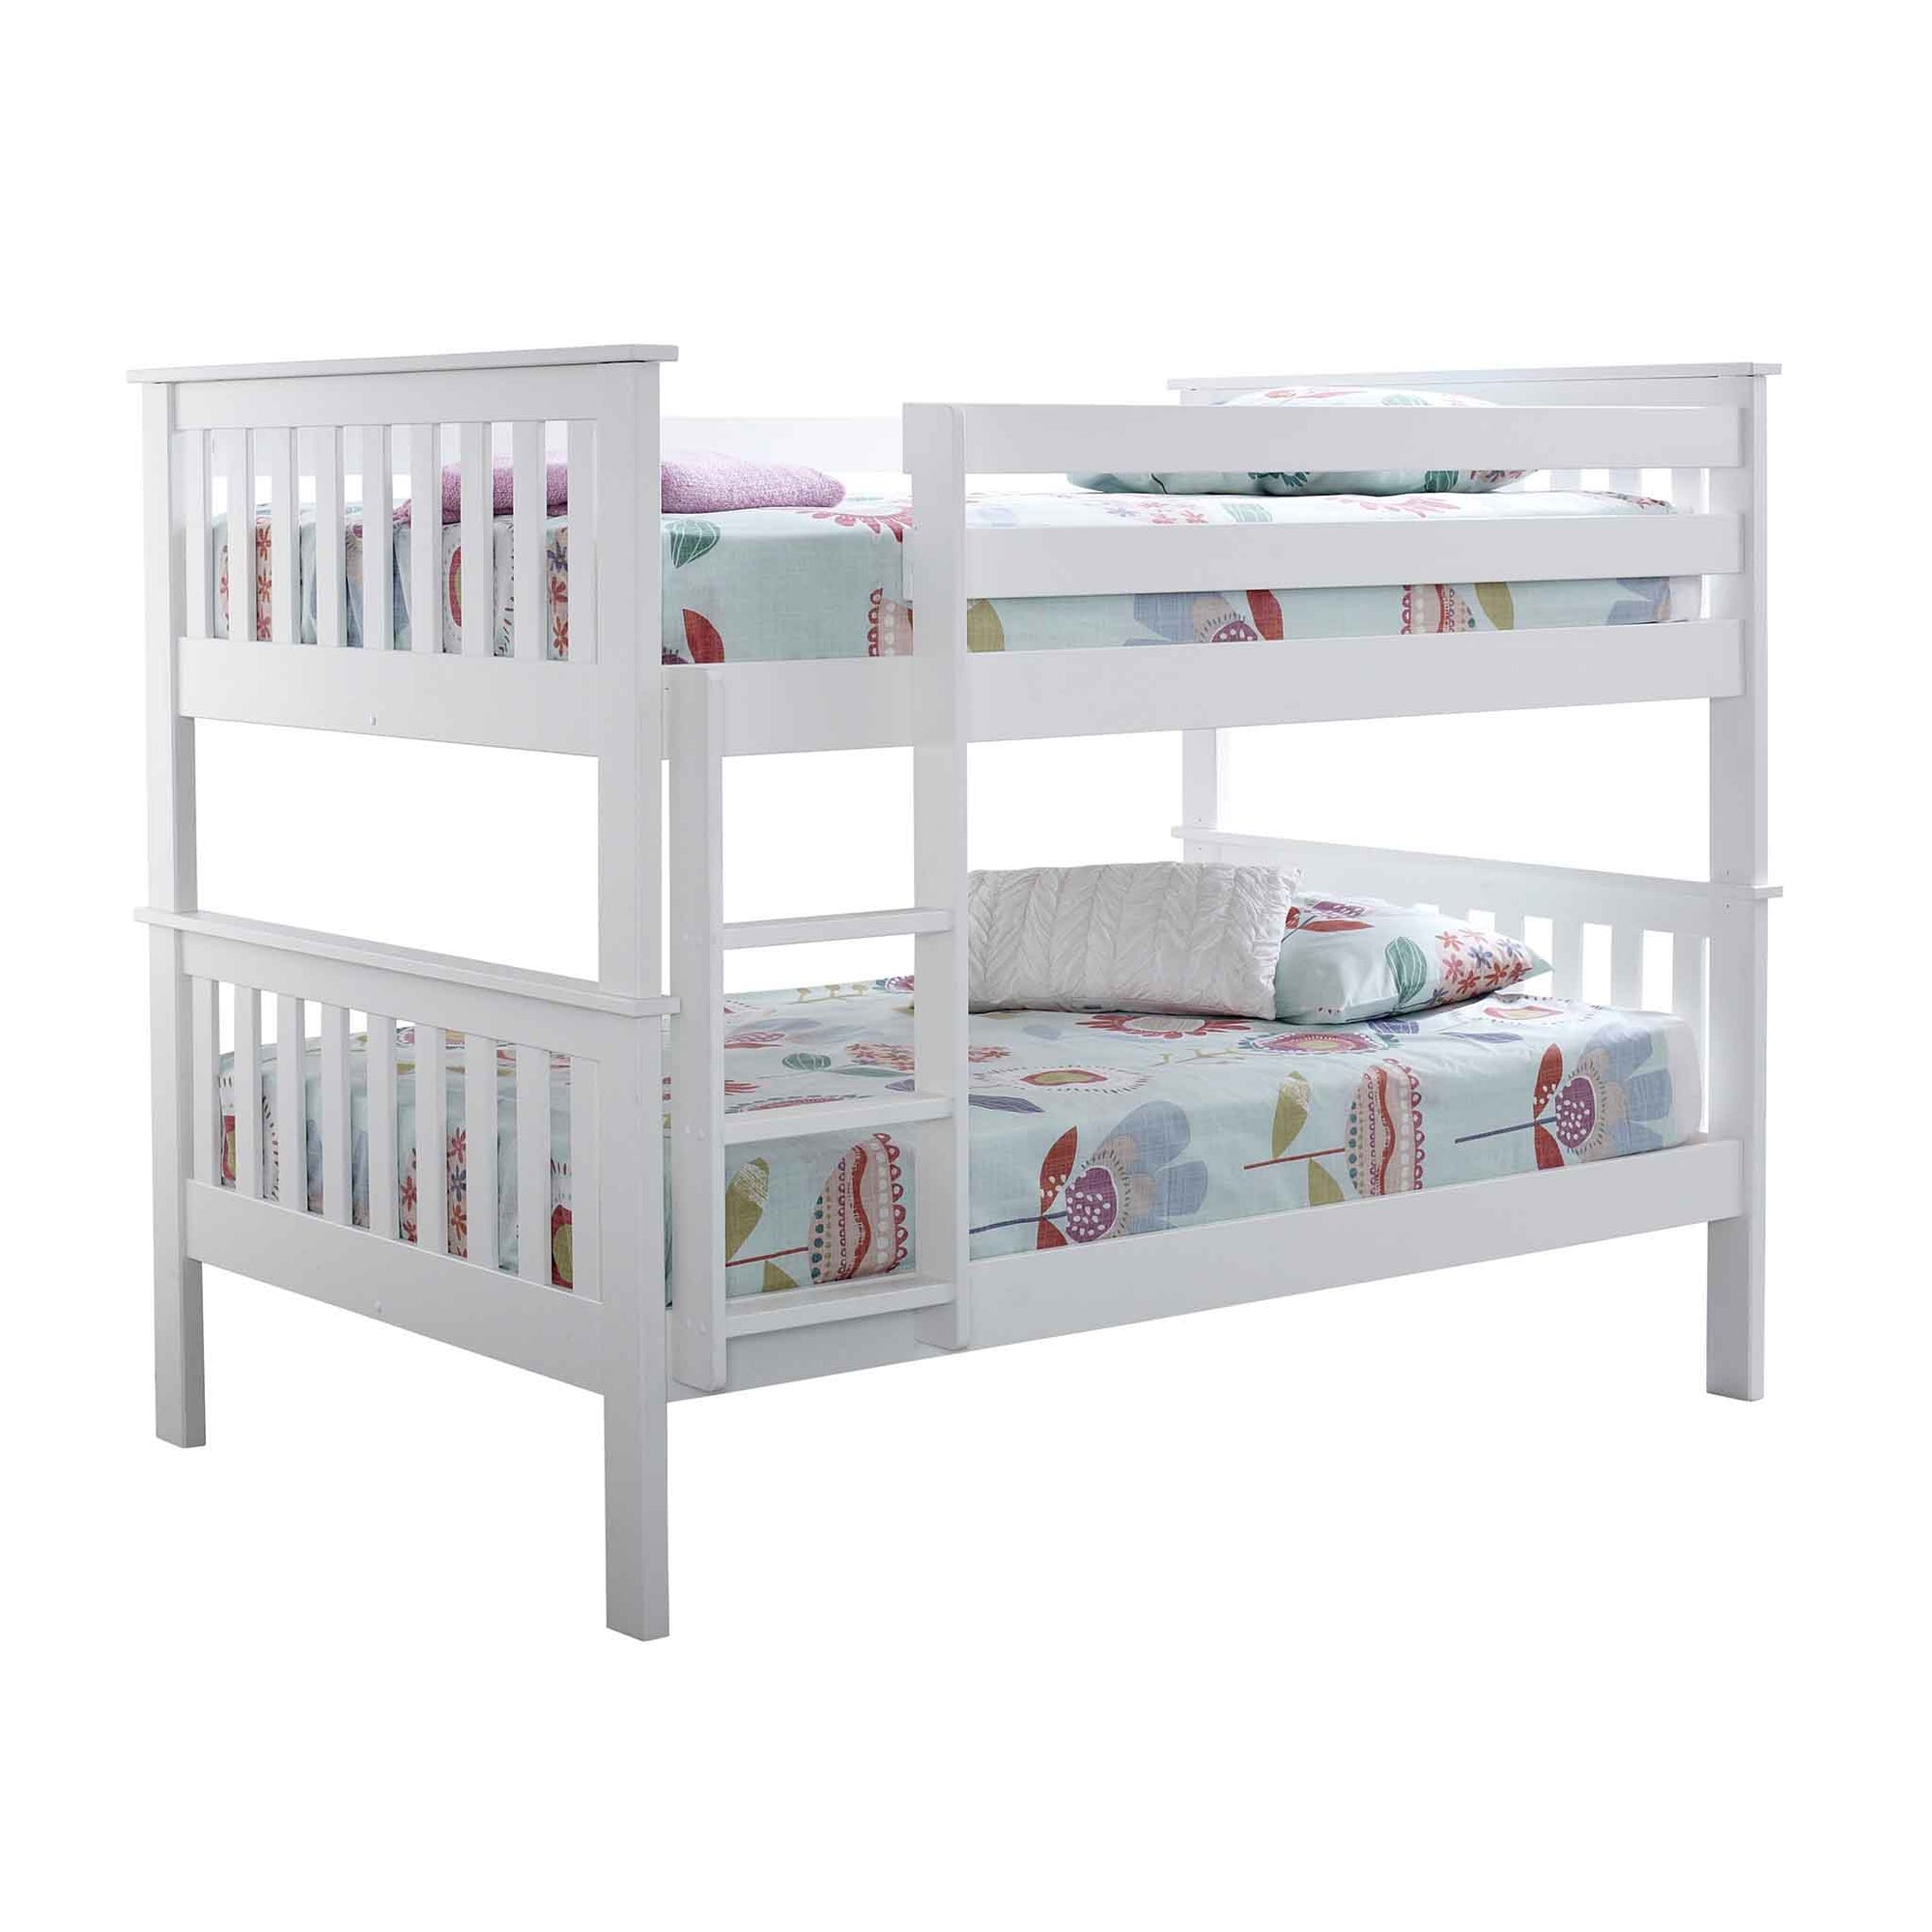 Large Quadruple White Contemporary Bunk Bed Detachable 4ft Small Double Slatted Wooden Beds For Kids Or Adults Roseland Furniture